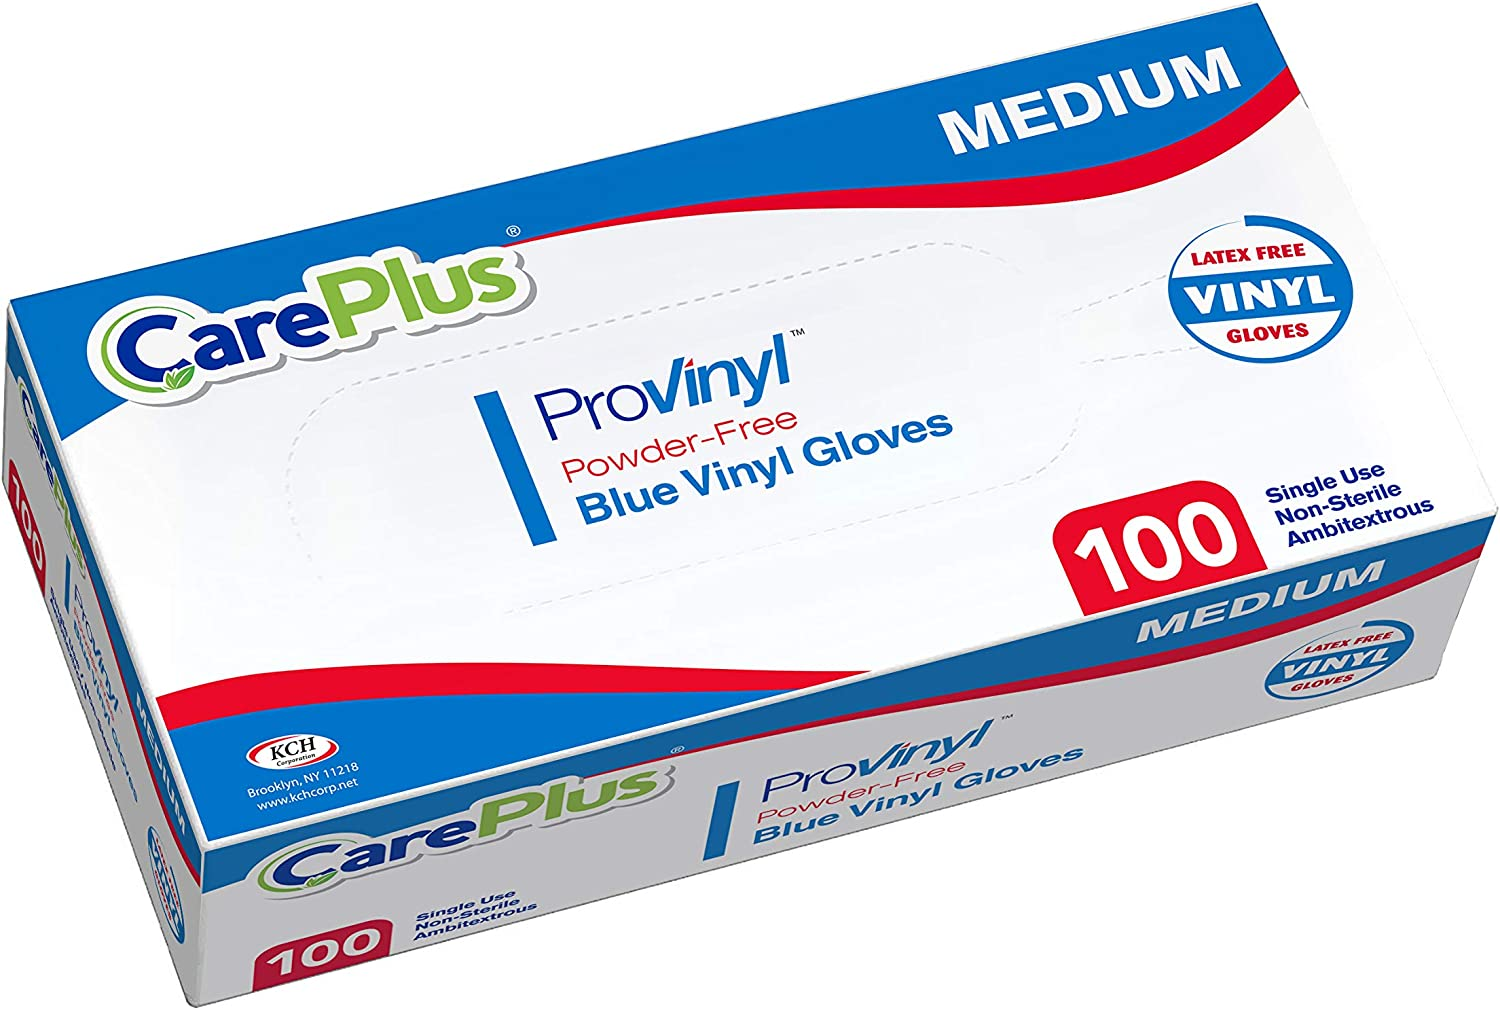 Disposable Blue Vinyl Gloves, Medium Size, Cleaning Gloves, Non Latex, Plastic Gloves, Food Service Gloves, Ambidextrous Gloves, Powder Free, All Purpose Gloves, 100 Count Dispenser Box, Blue Gloves